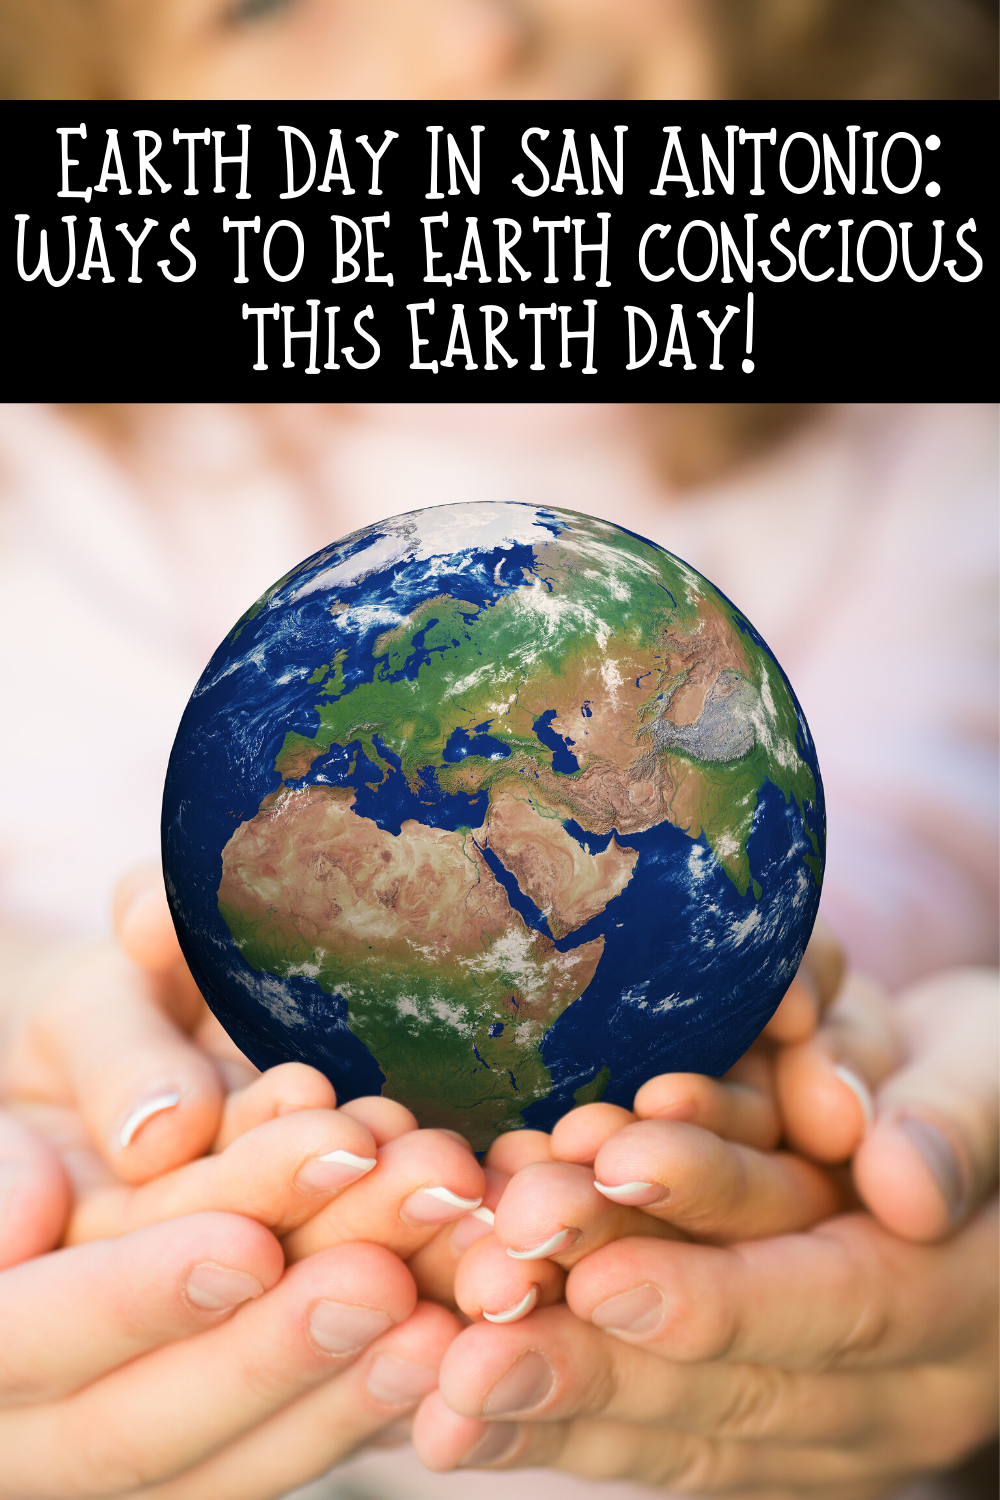 Earth Day in San Antonio might look a little different this year. If you can't get out and volunteer in San Antonio to celebrate earth day, here are some ways you can make a difference at home!